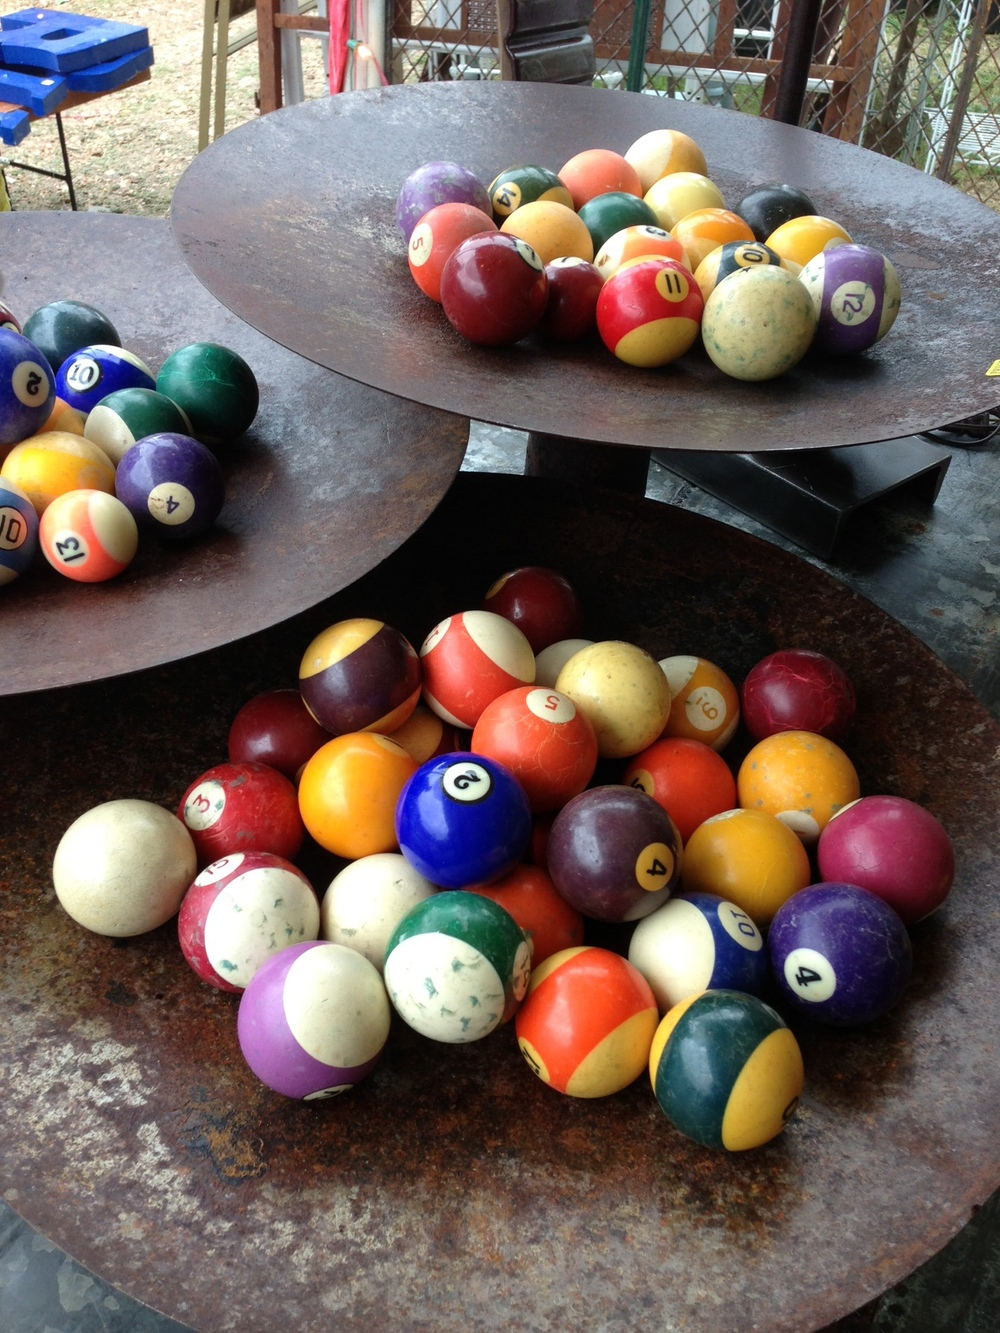 Antique furniture, decor;  colorful pool balls